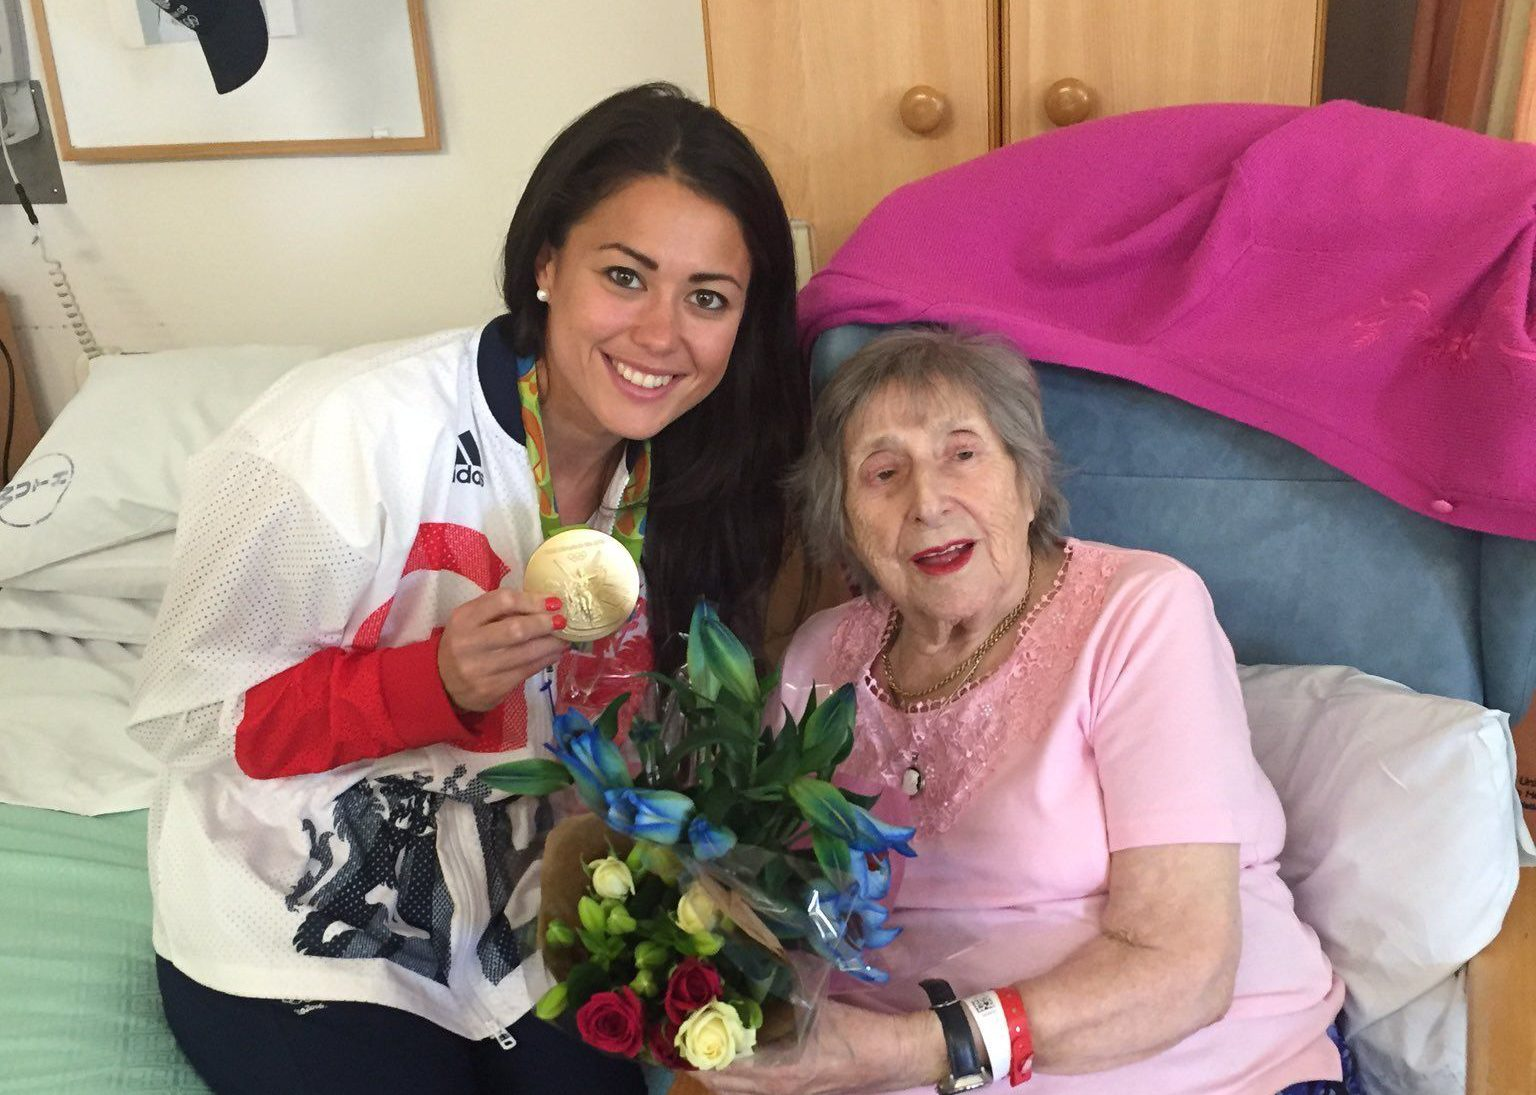 Olympic gold medallist cries during emotional reunion with ill nan